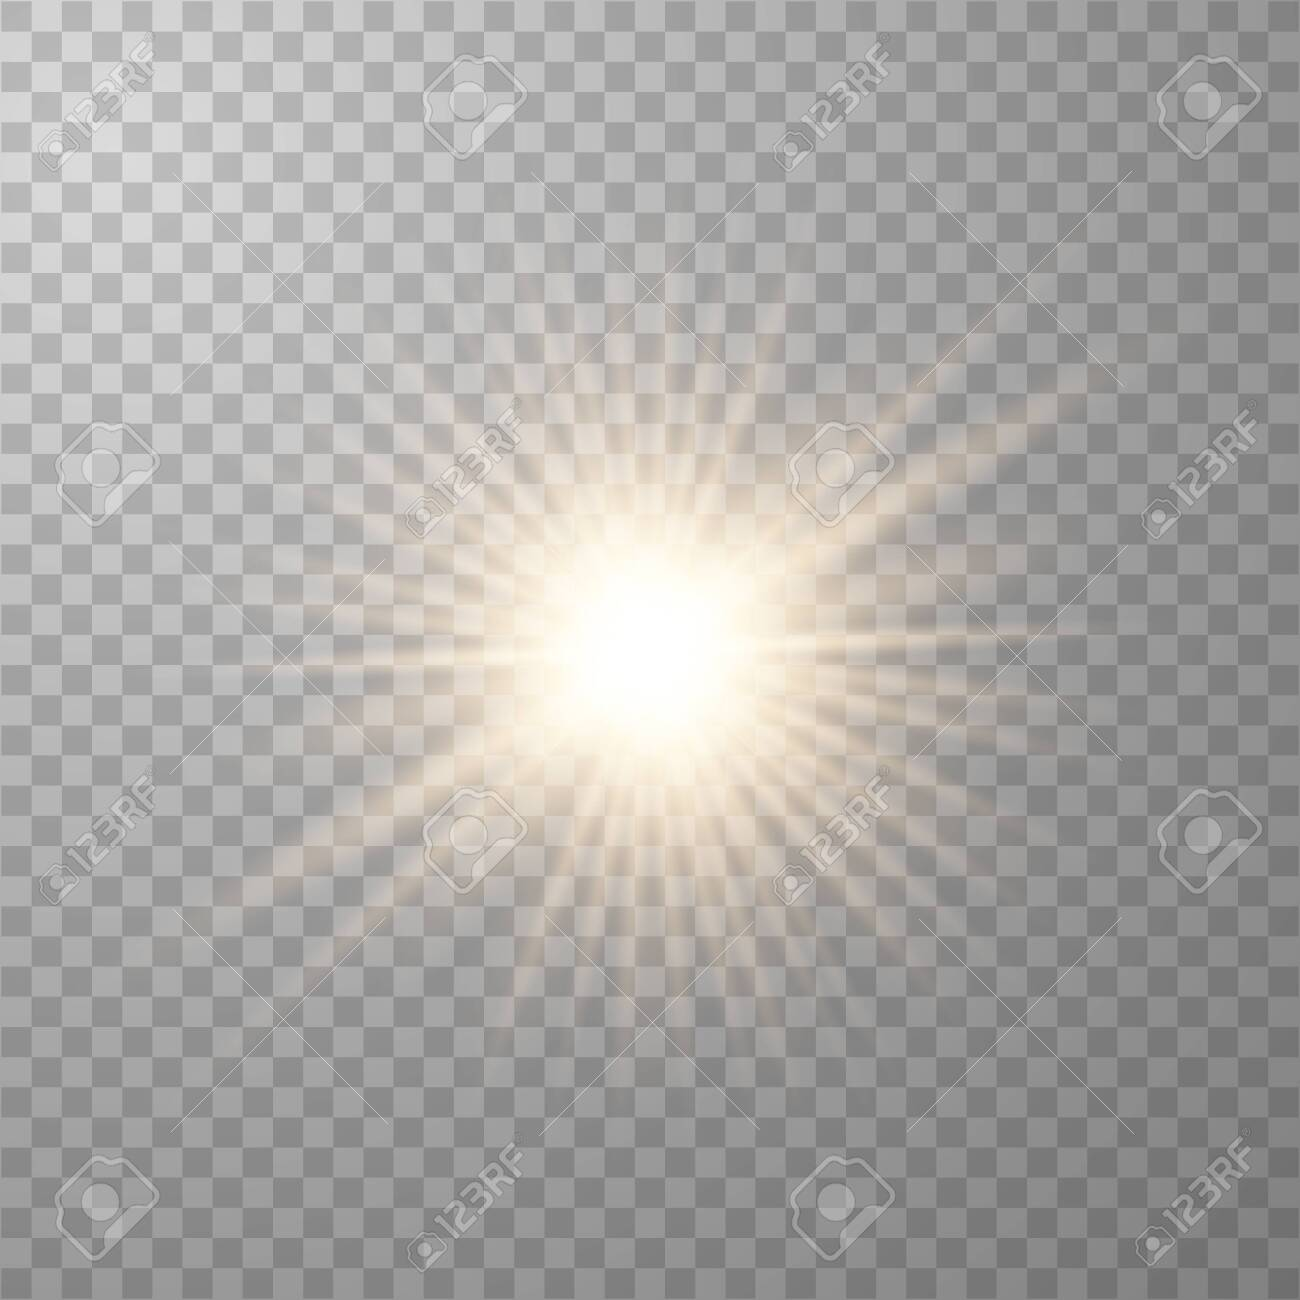 Gold beautiful light explodes with a transparent explosion. Vector, bright illustration for perfect effect with sparkles. Transparent shine of the gloss gradient, bright flash. - 122747464